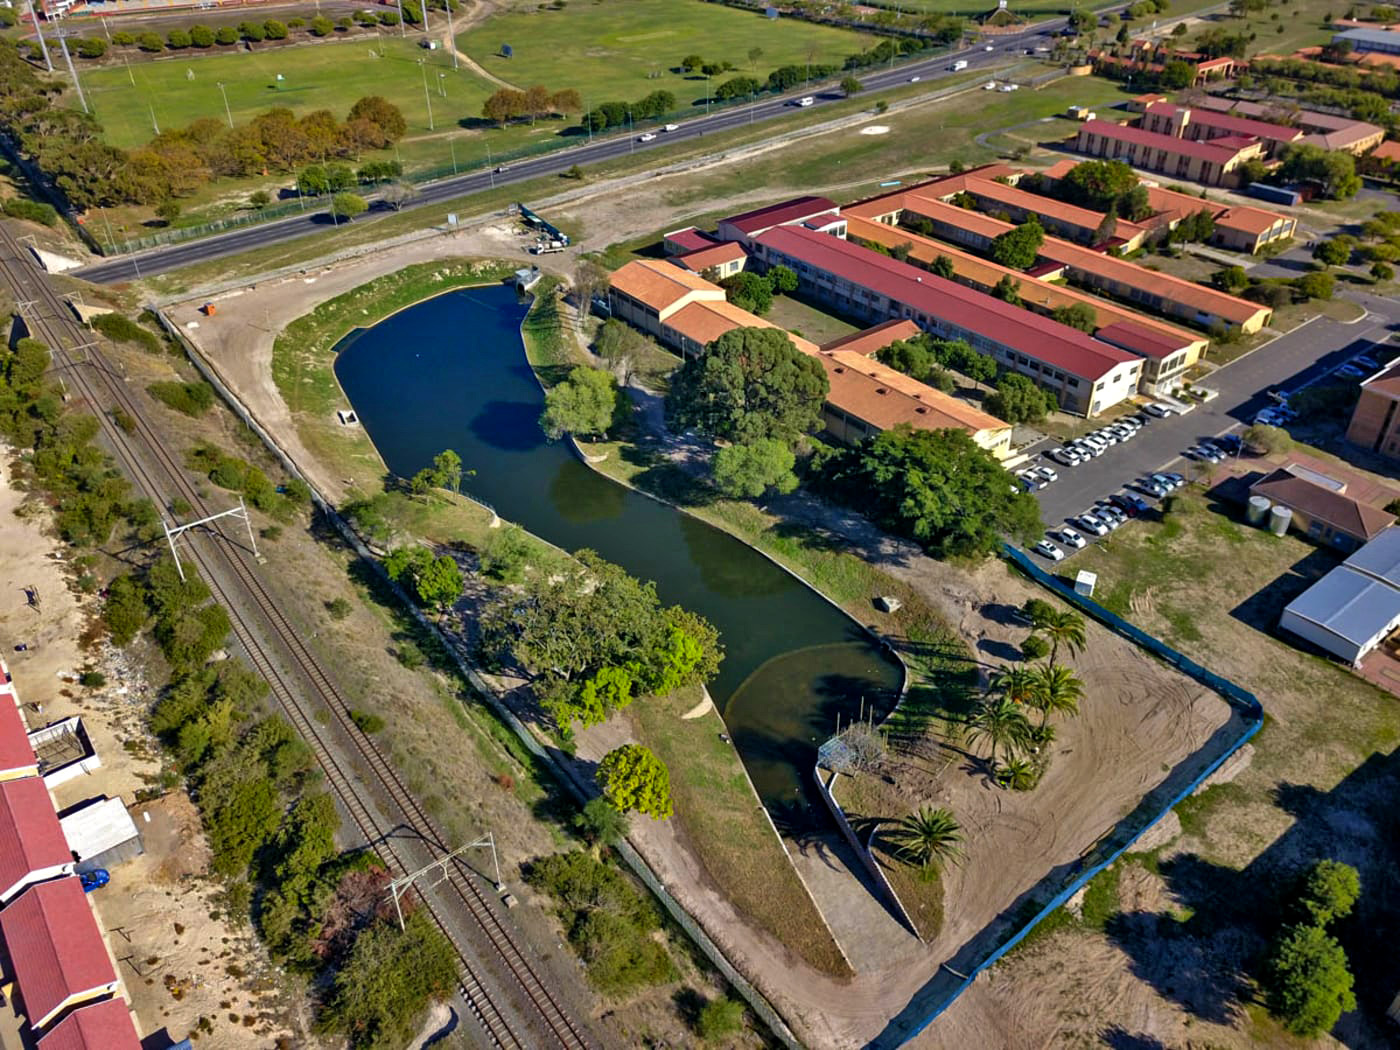 The existing pond was losing a lot of water, and that is why CPUT decided to build a 420m long retaining wall around its circumference